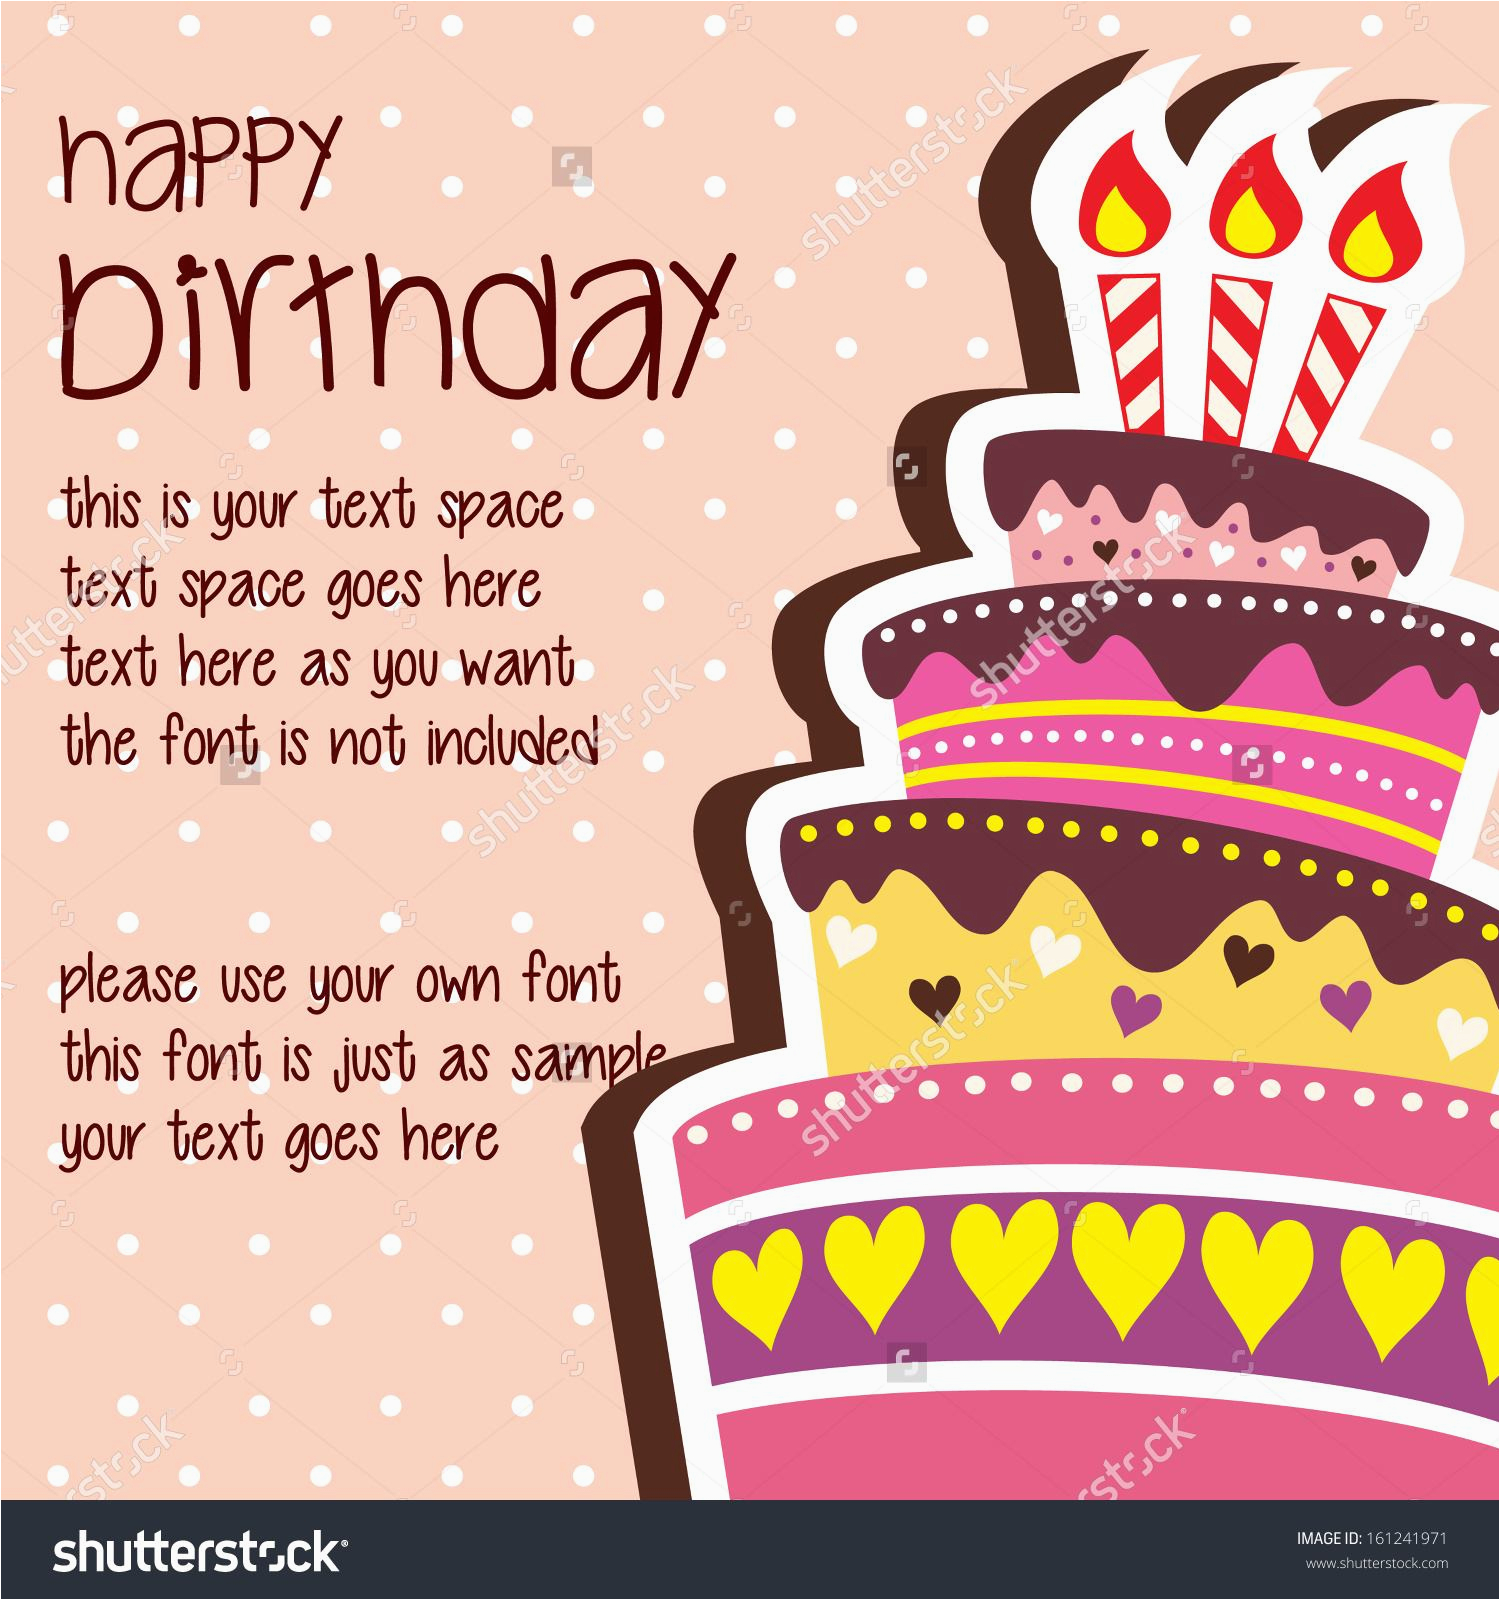 Birthday Card Creator Printable Free Awesome Cards Downloadtarget